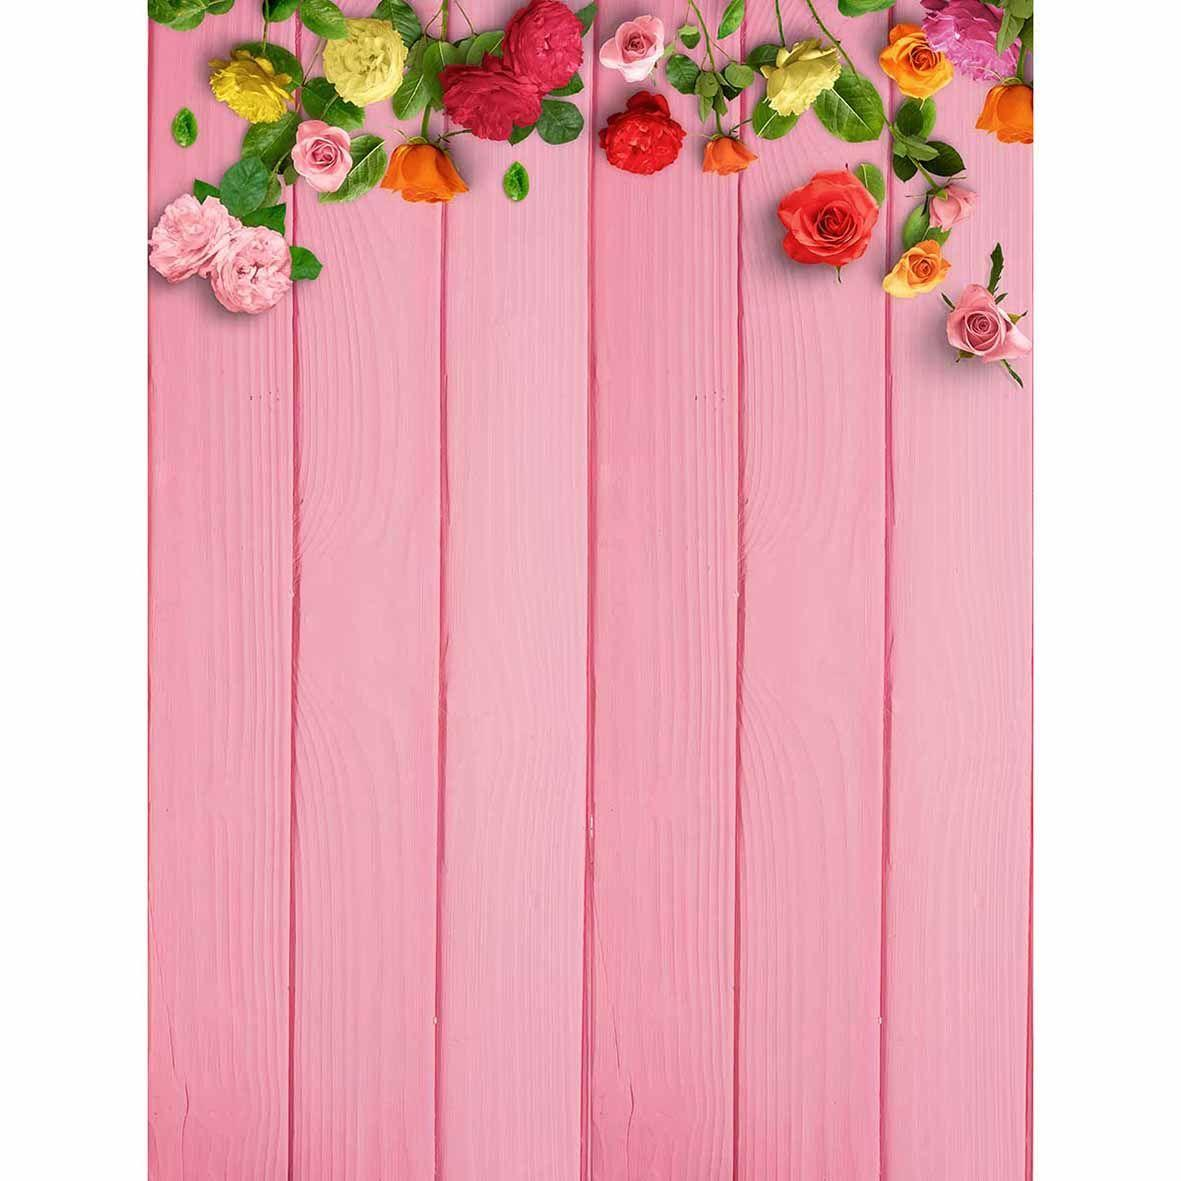 Allenjoy Pink wood colorful flowers cute backgrounds for children